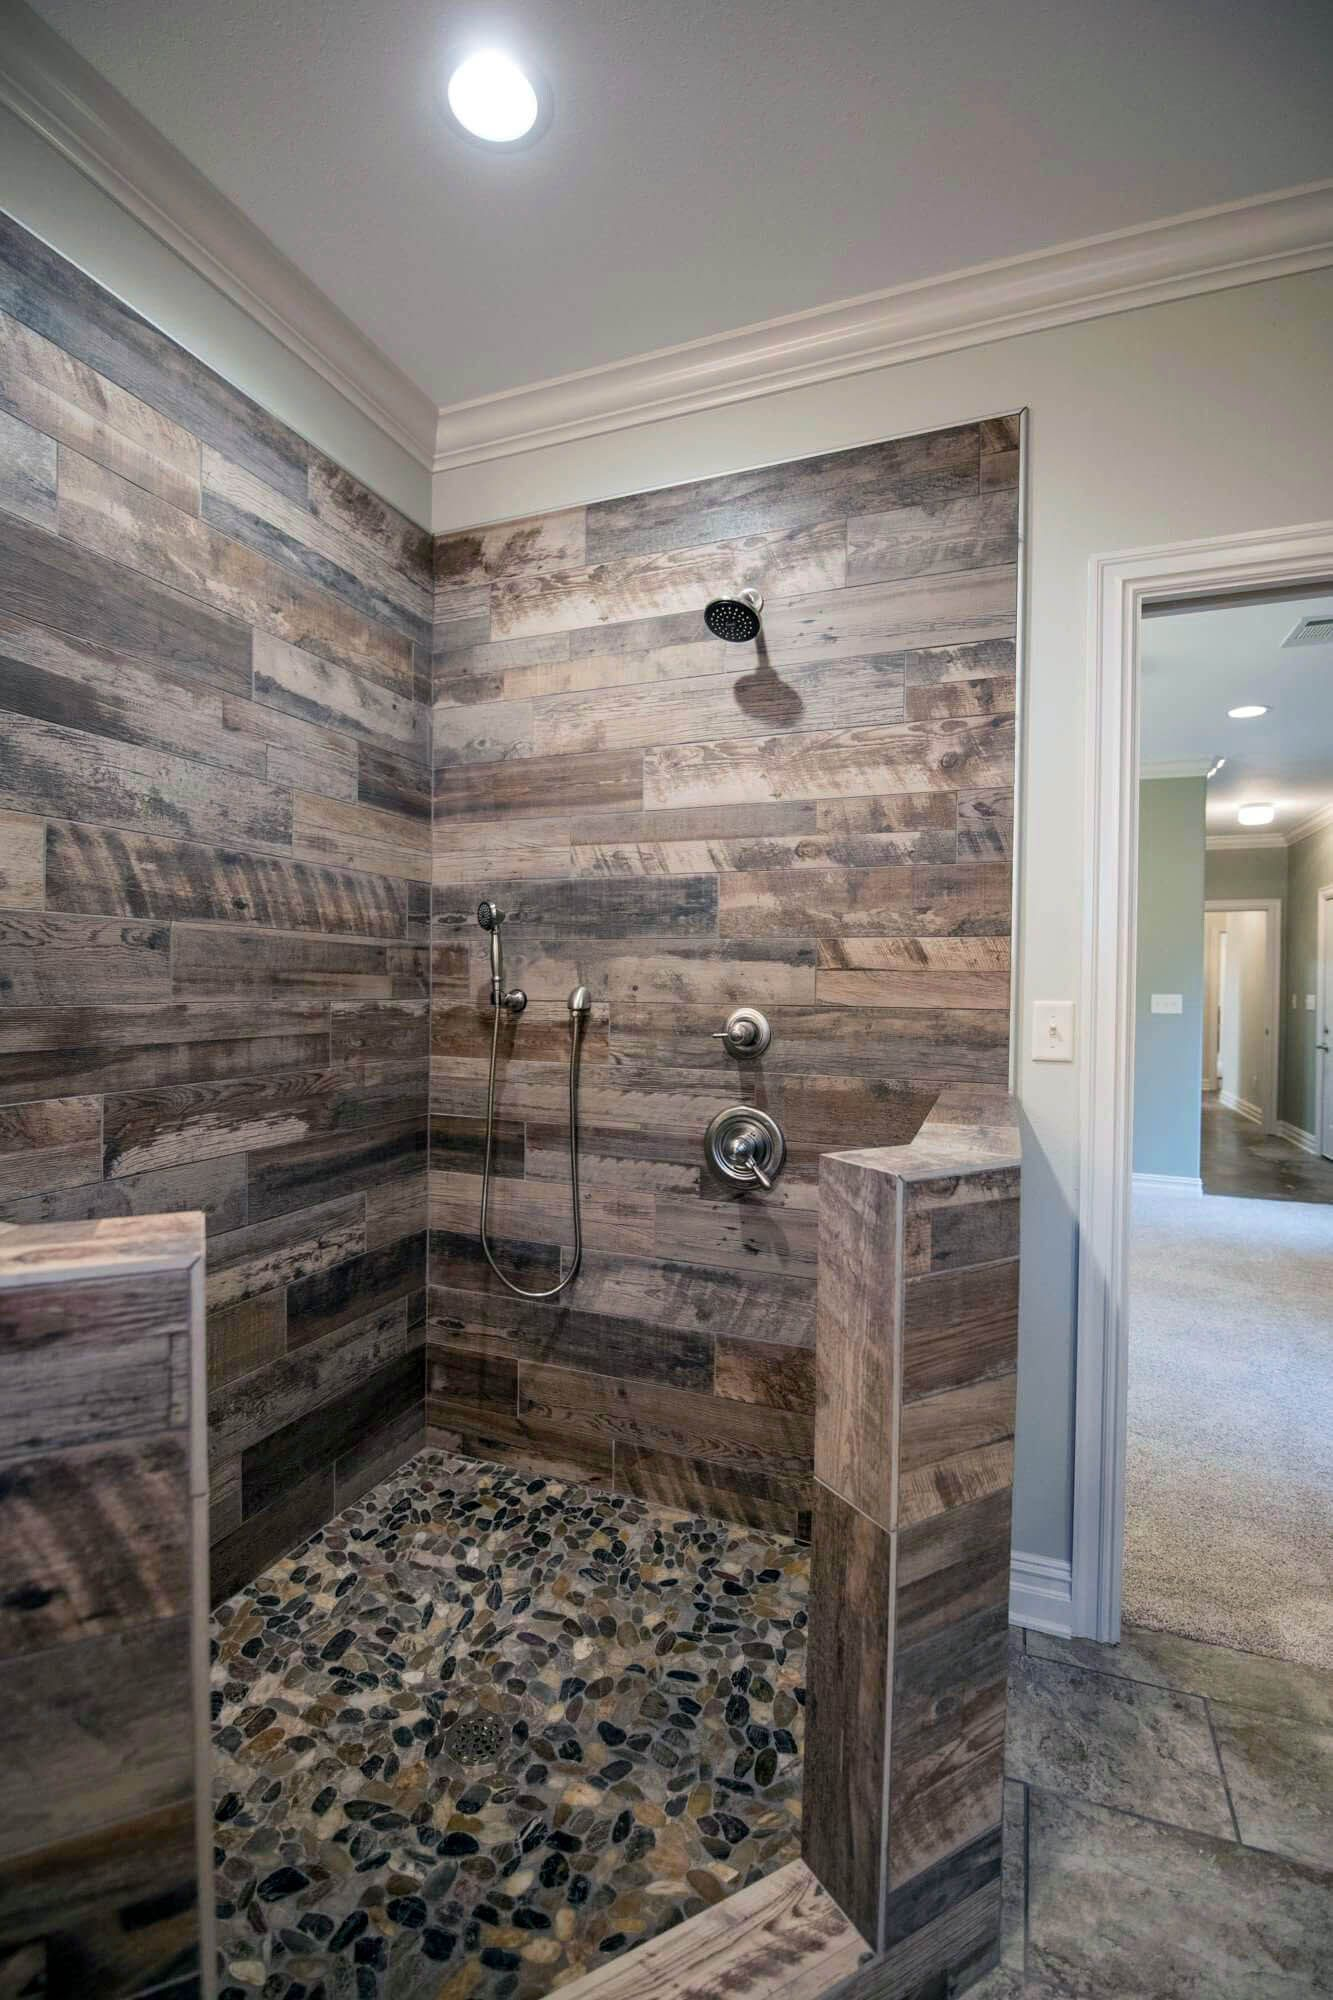 7 Unique Bathroom Tiles Ideas Show Your Personality Bathroom